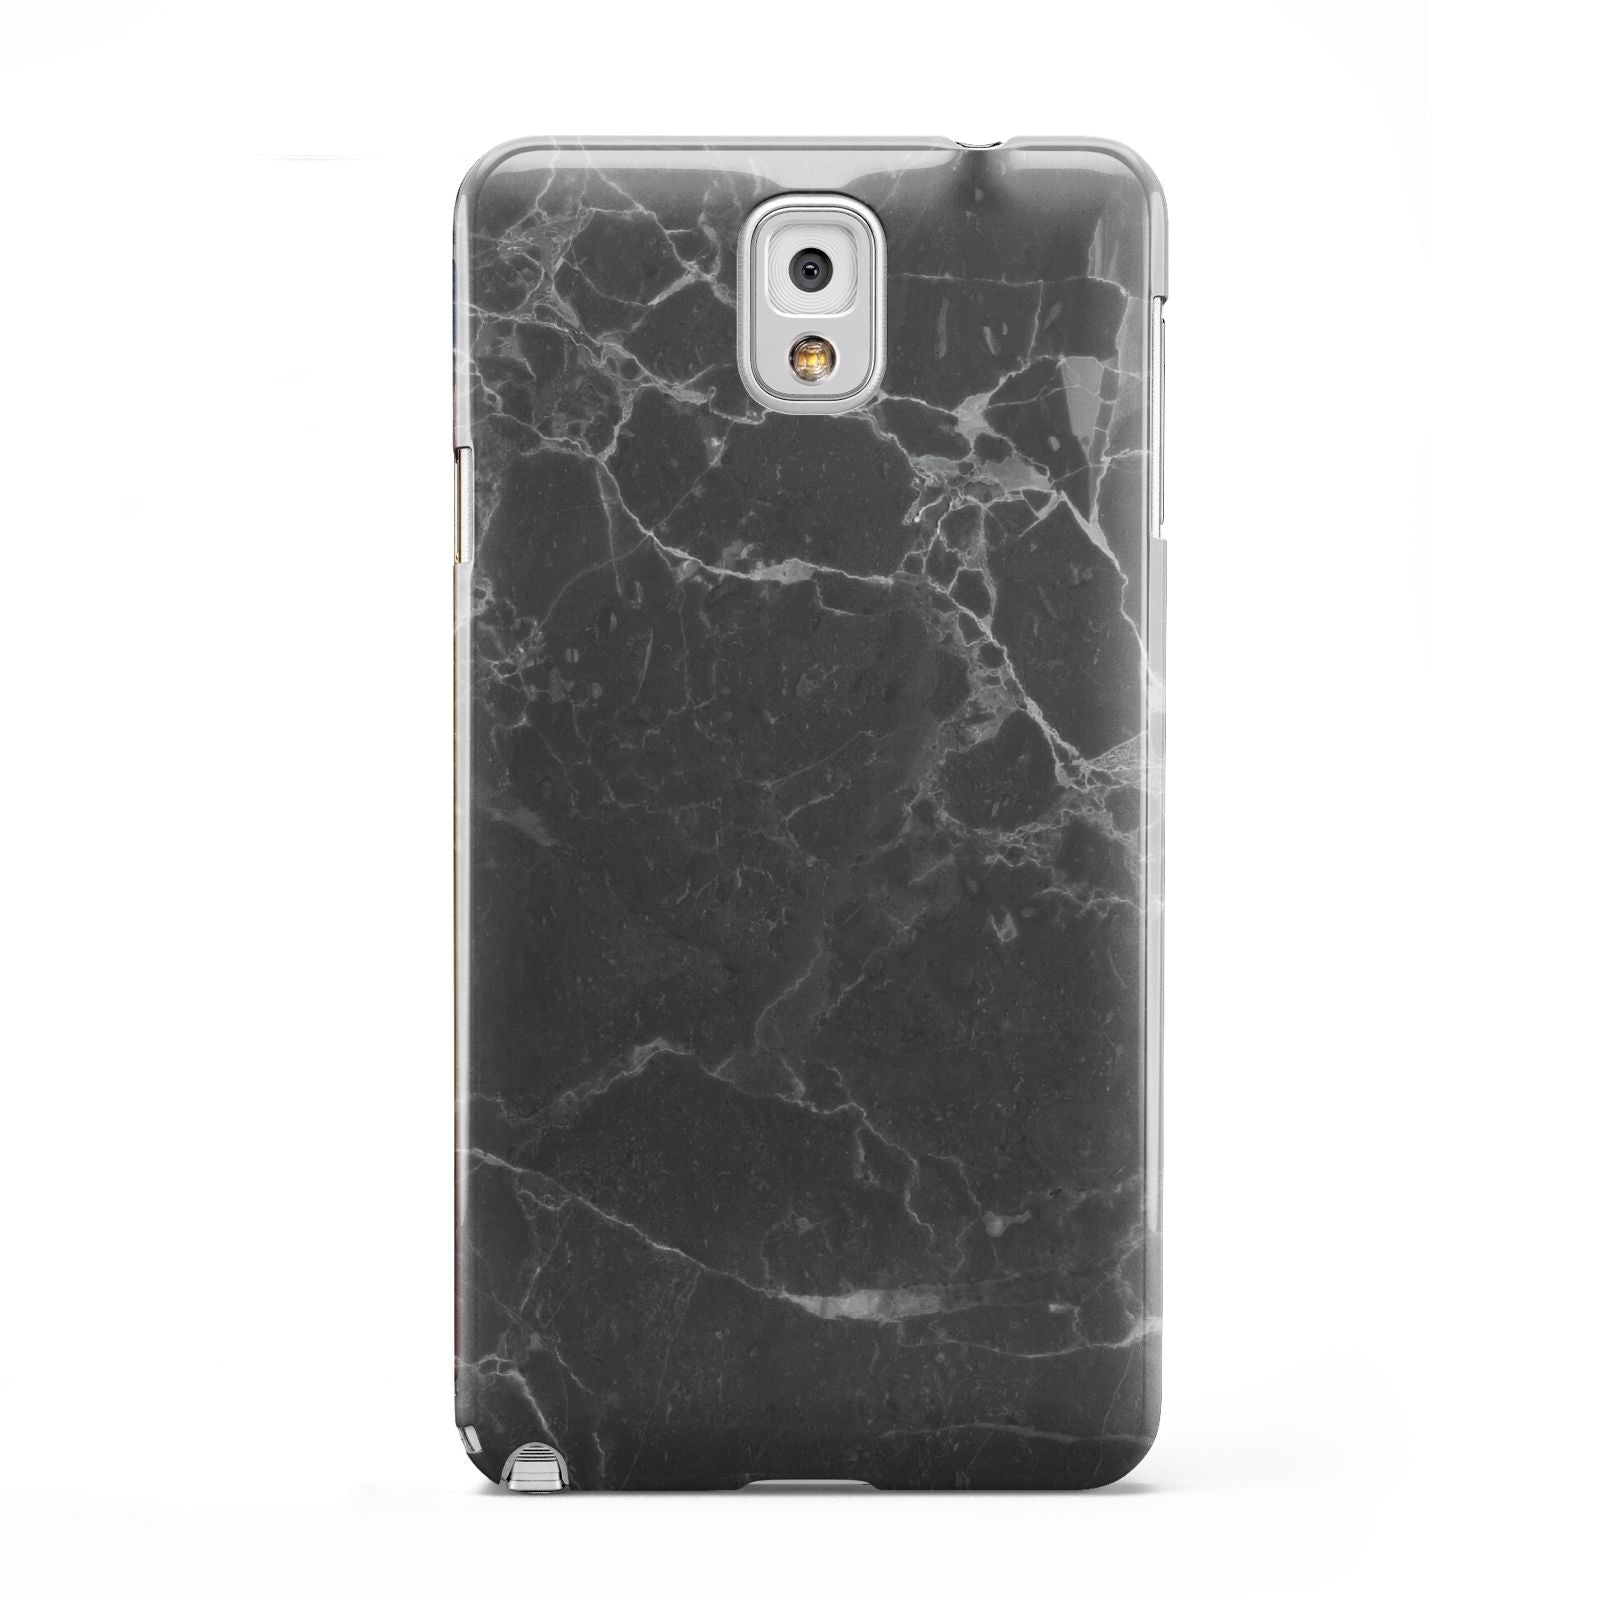 Faux Marble Effect Black Samsung Galaxy Note 3 Case